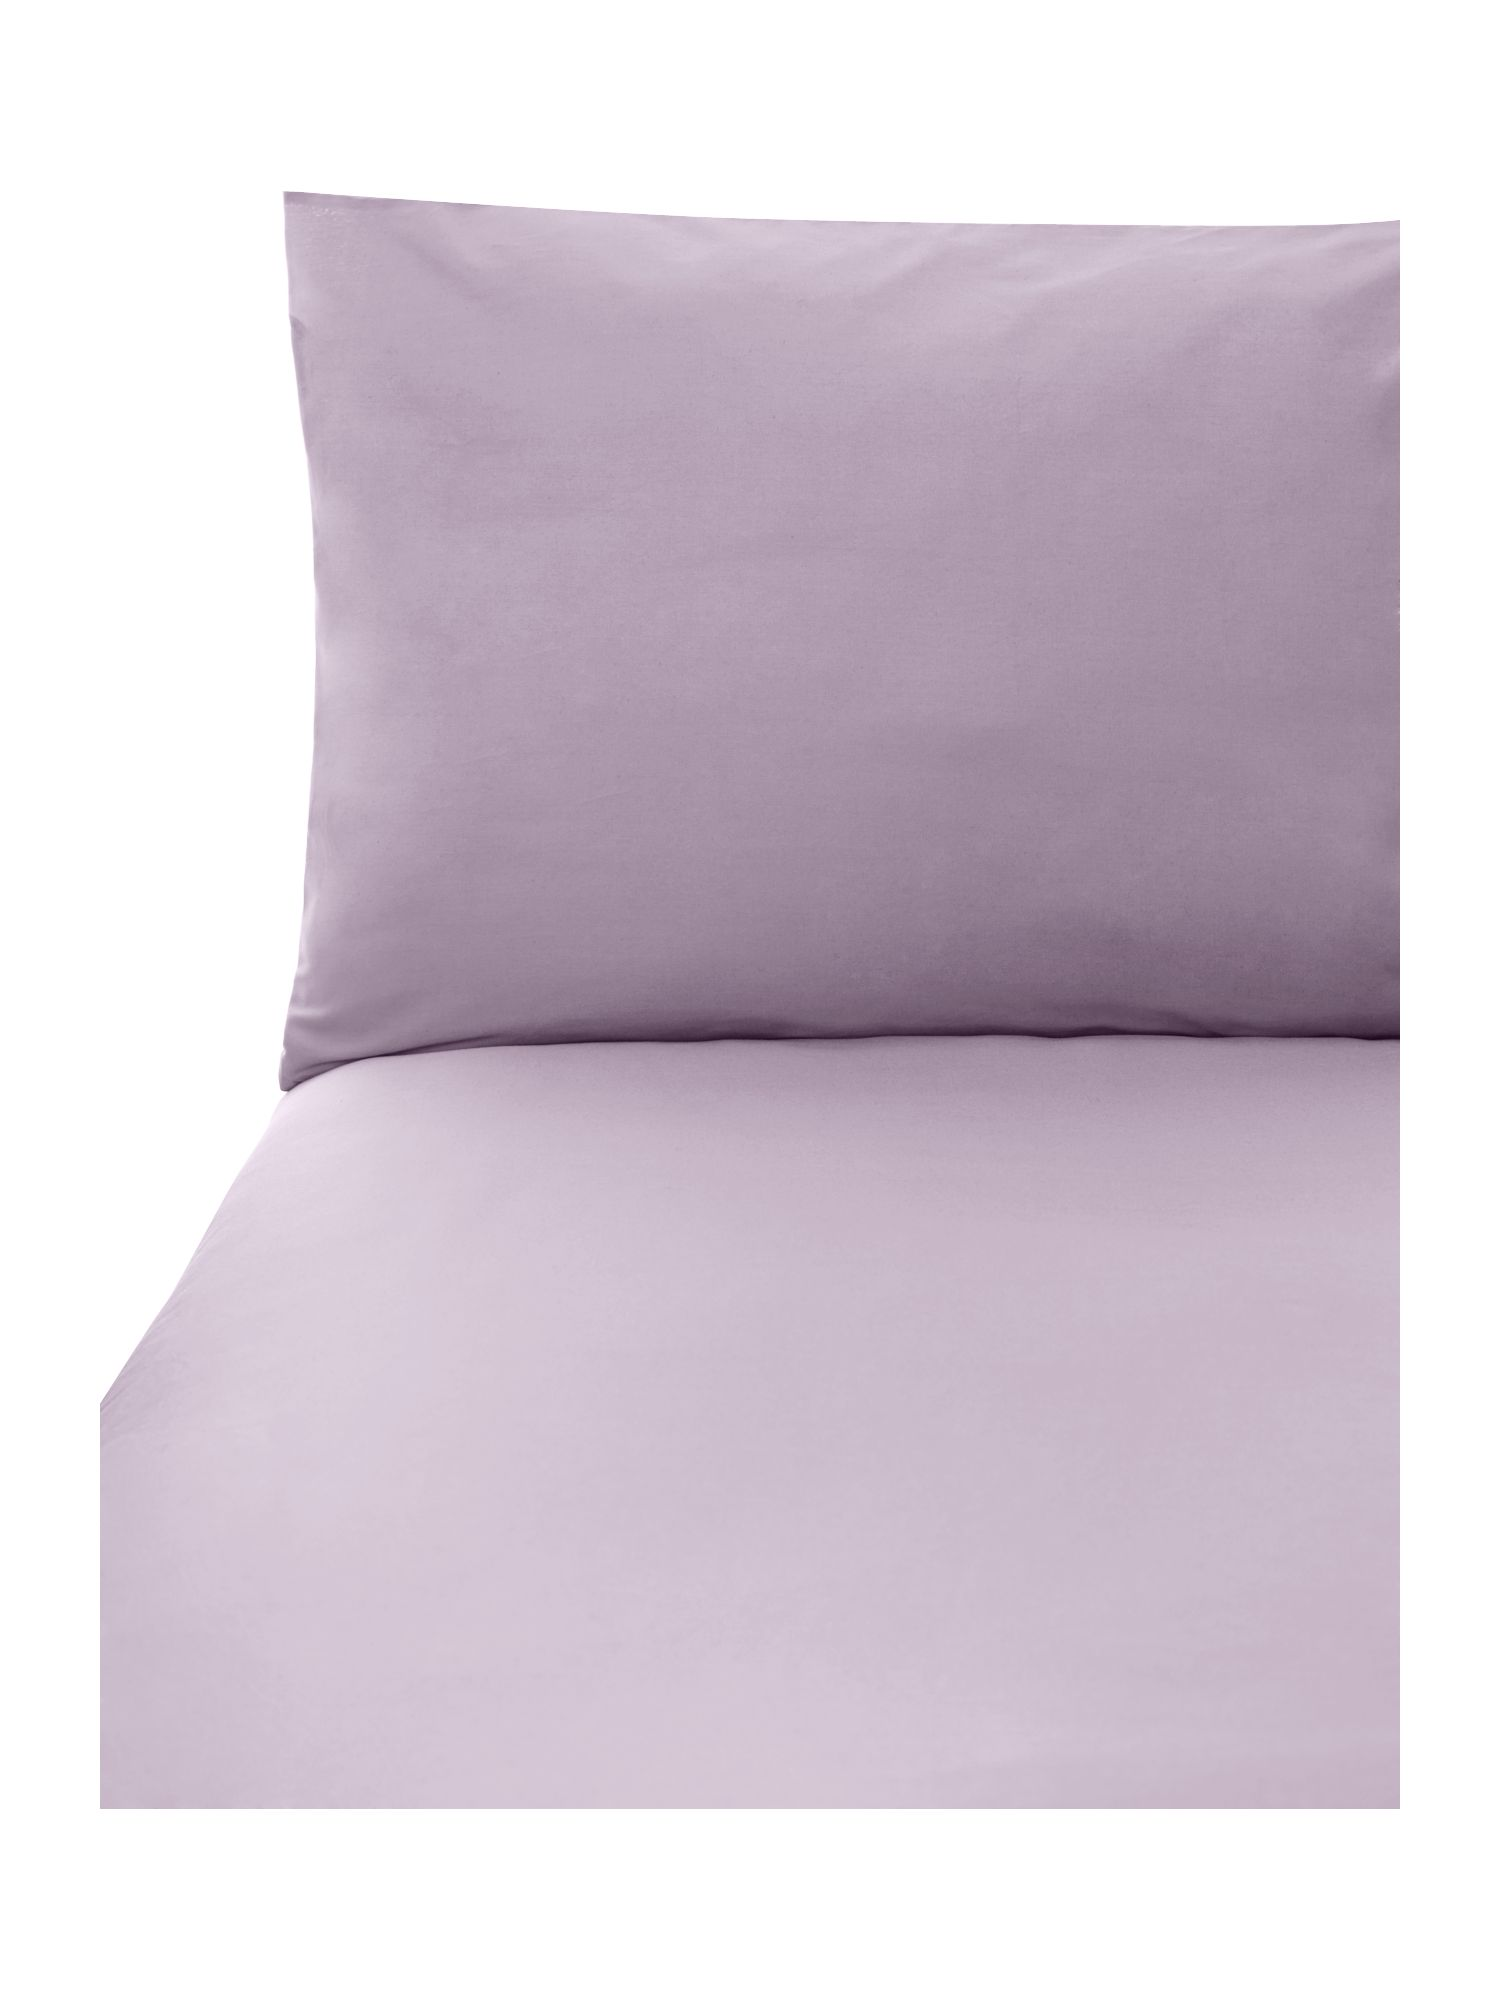 Lilac 100% cotton super king fitted sheet